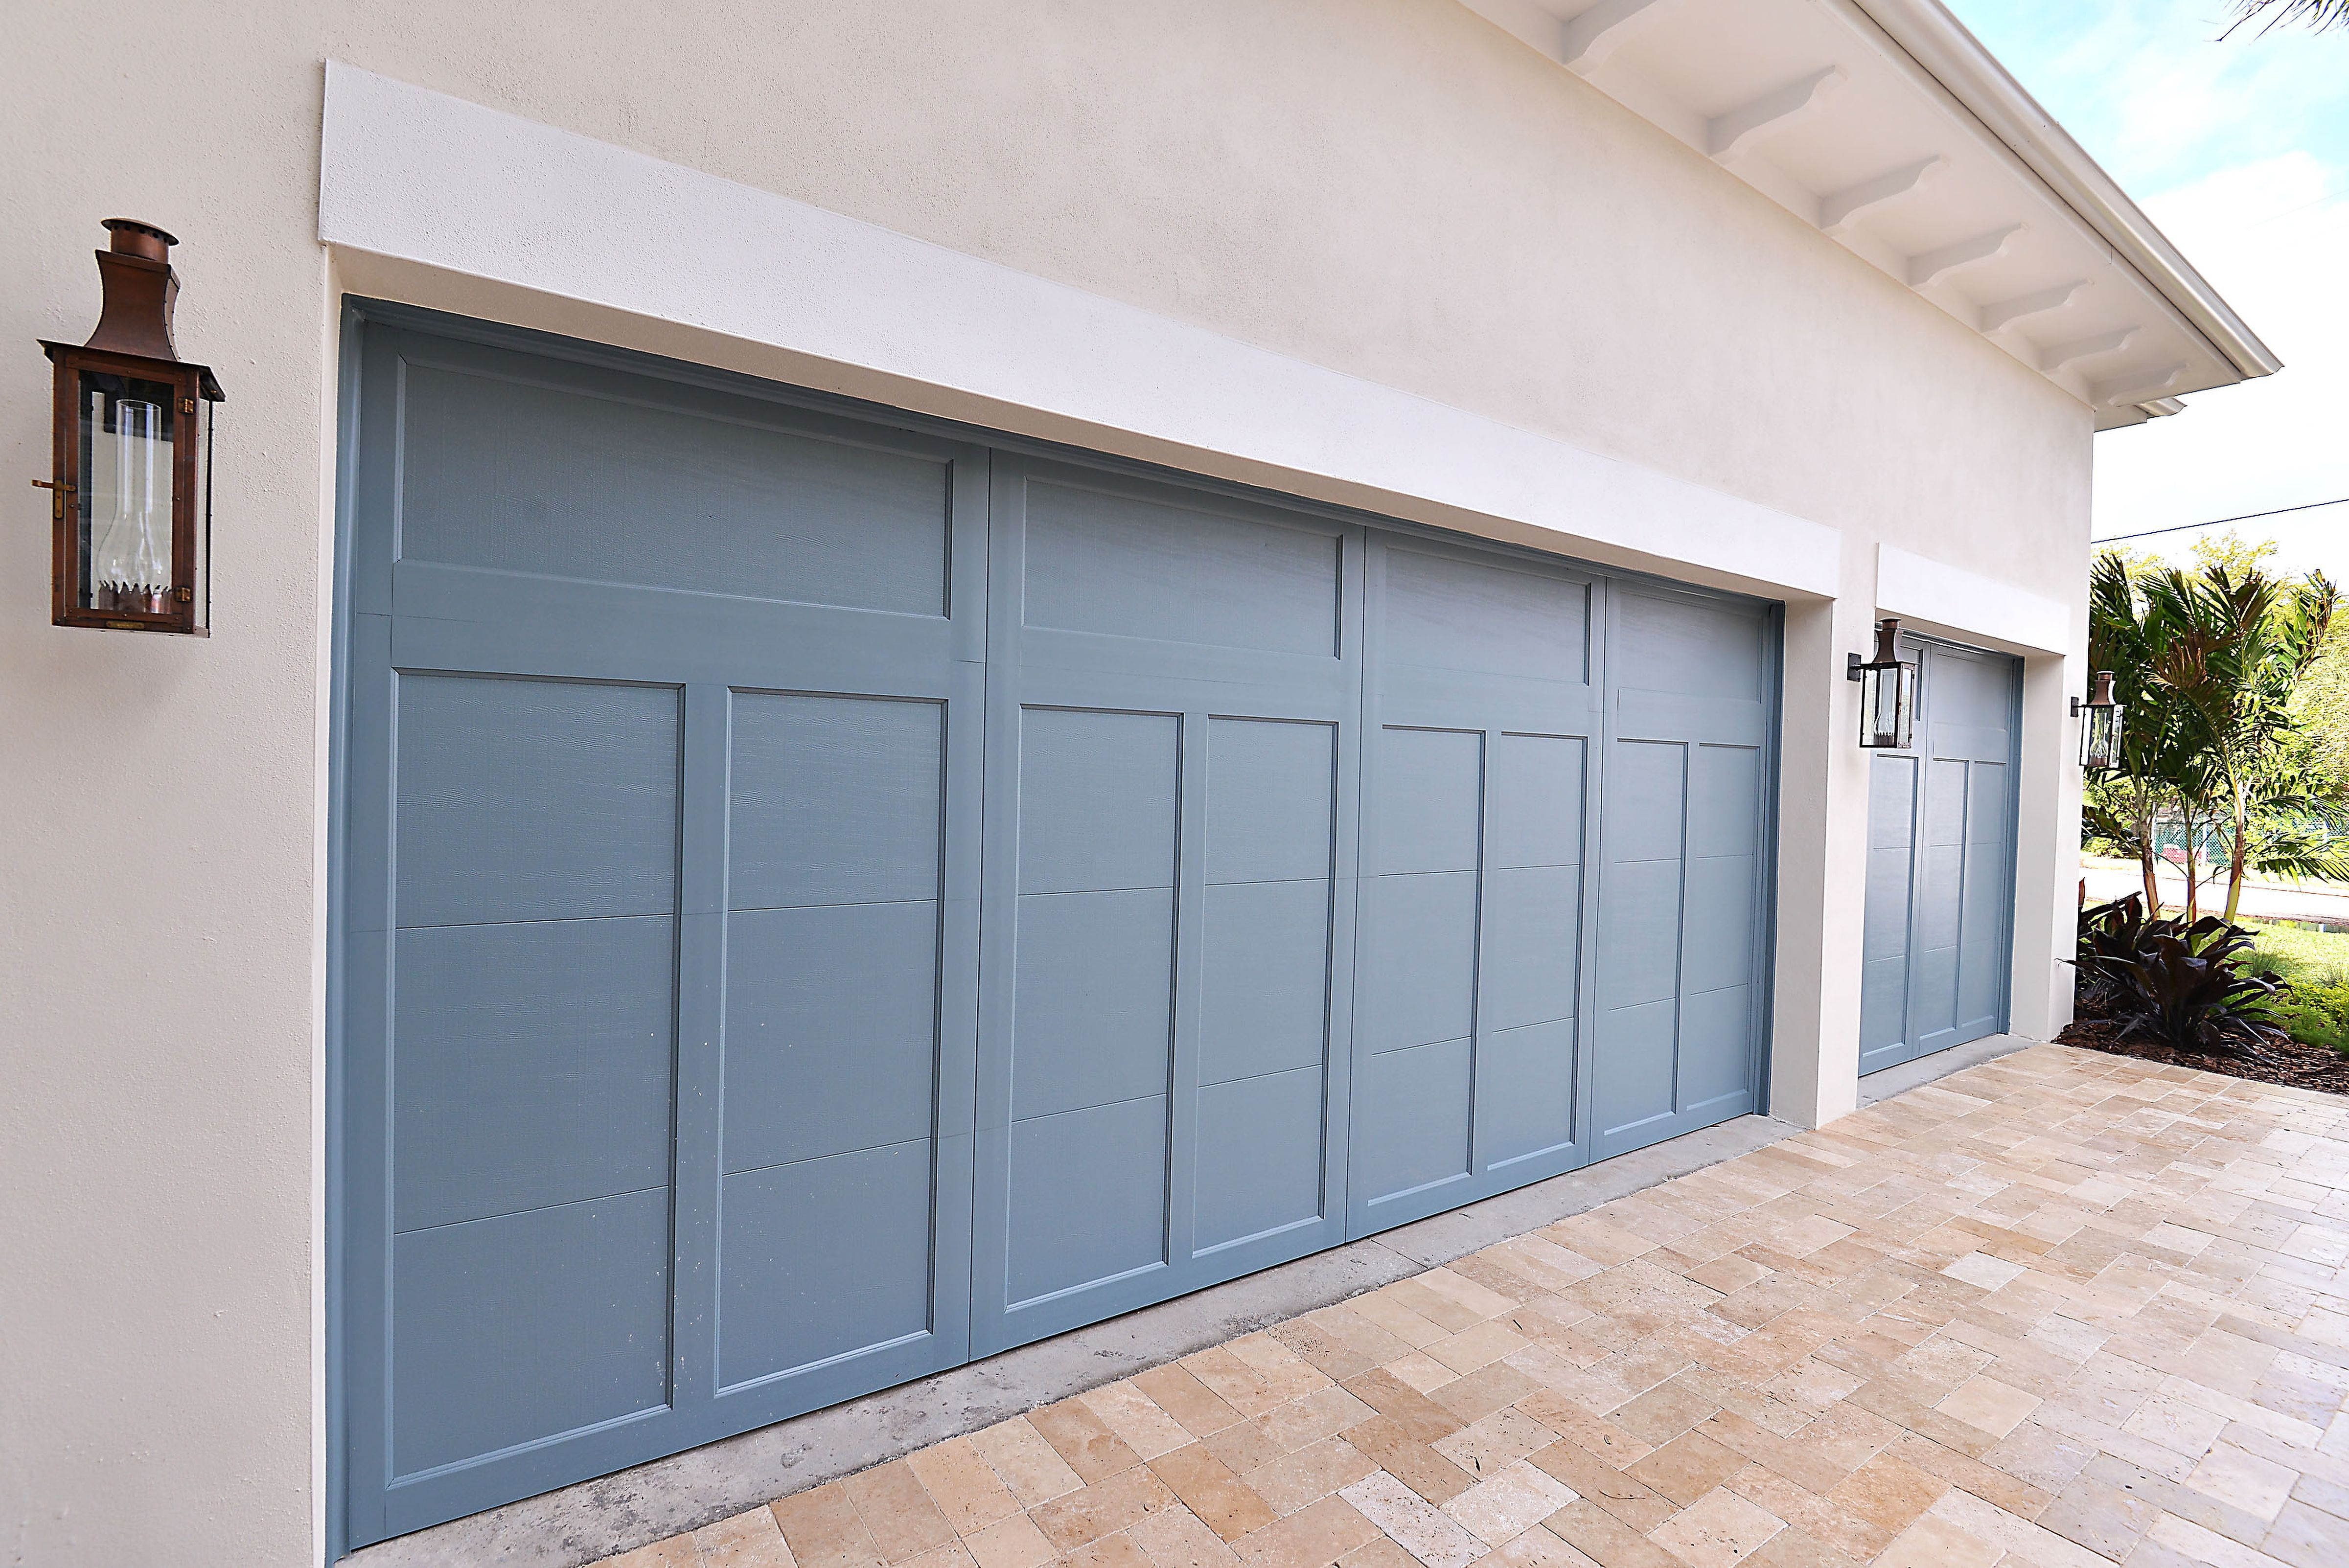 Pin By Wina Levy On Southern Living Showcase Home Details Garage Doors House Exterior Blue Garage Door Colors